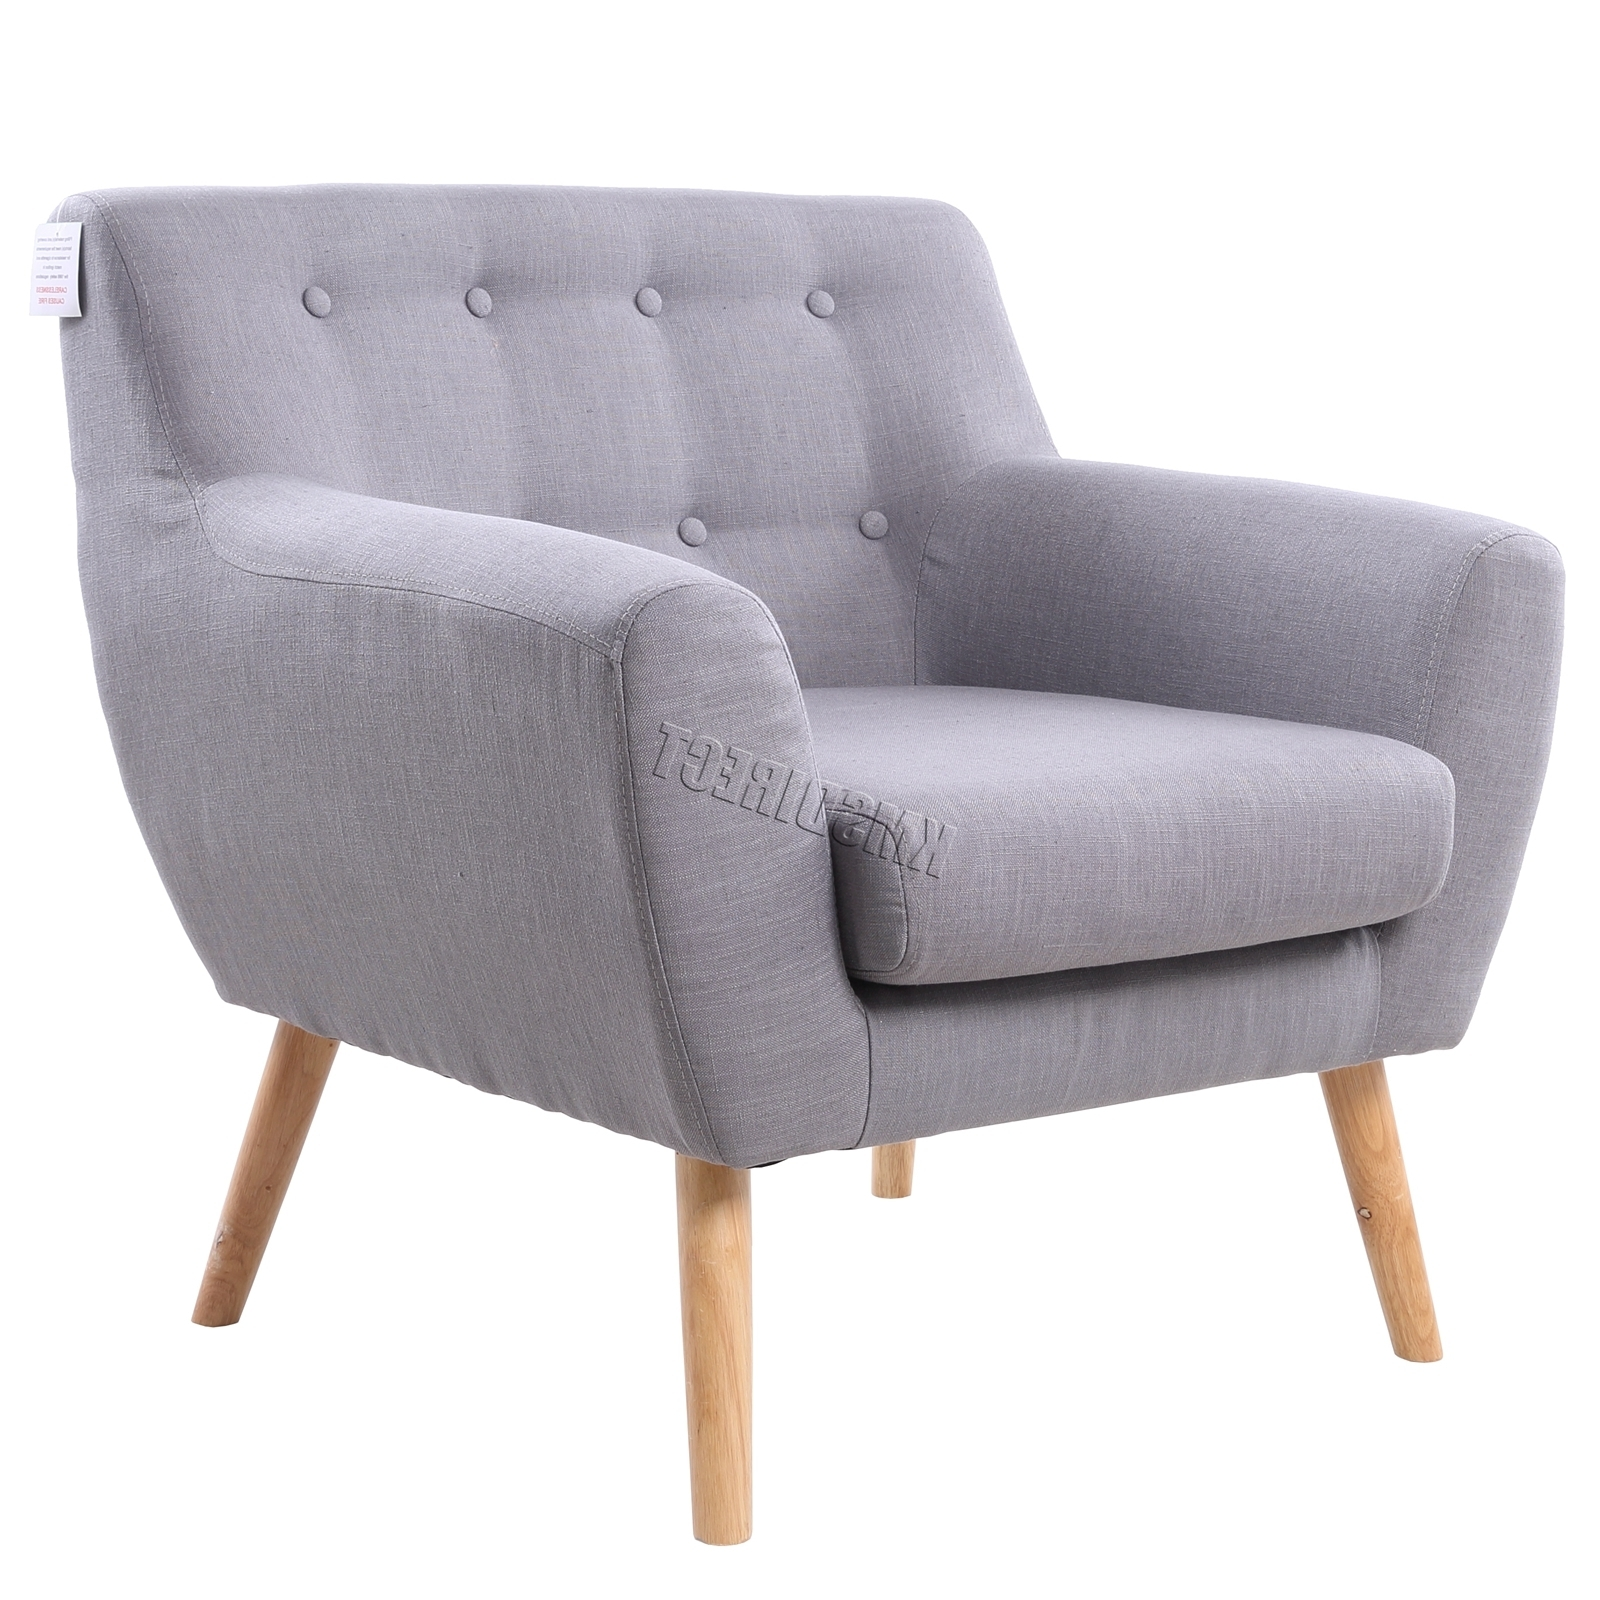 Newest Foxhunter Linen Fabric 1 Single Seat Sofa Tub Armchair Dining Room Throughout Single Seat Sofa Chairs (View 6 of 15)